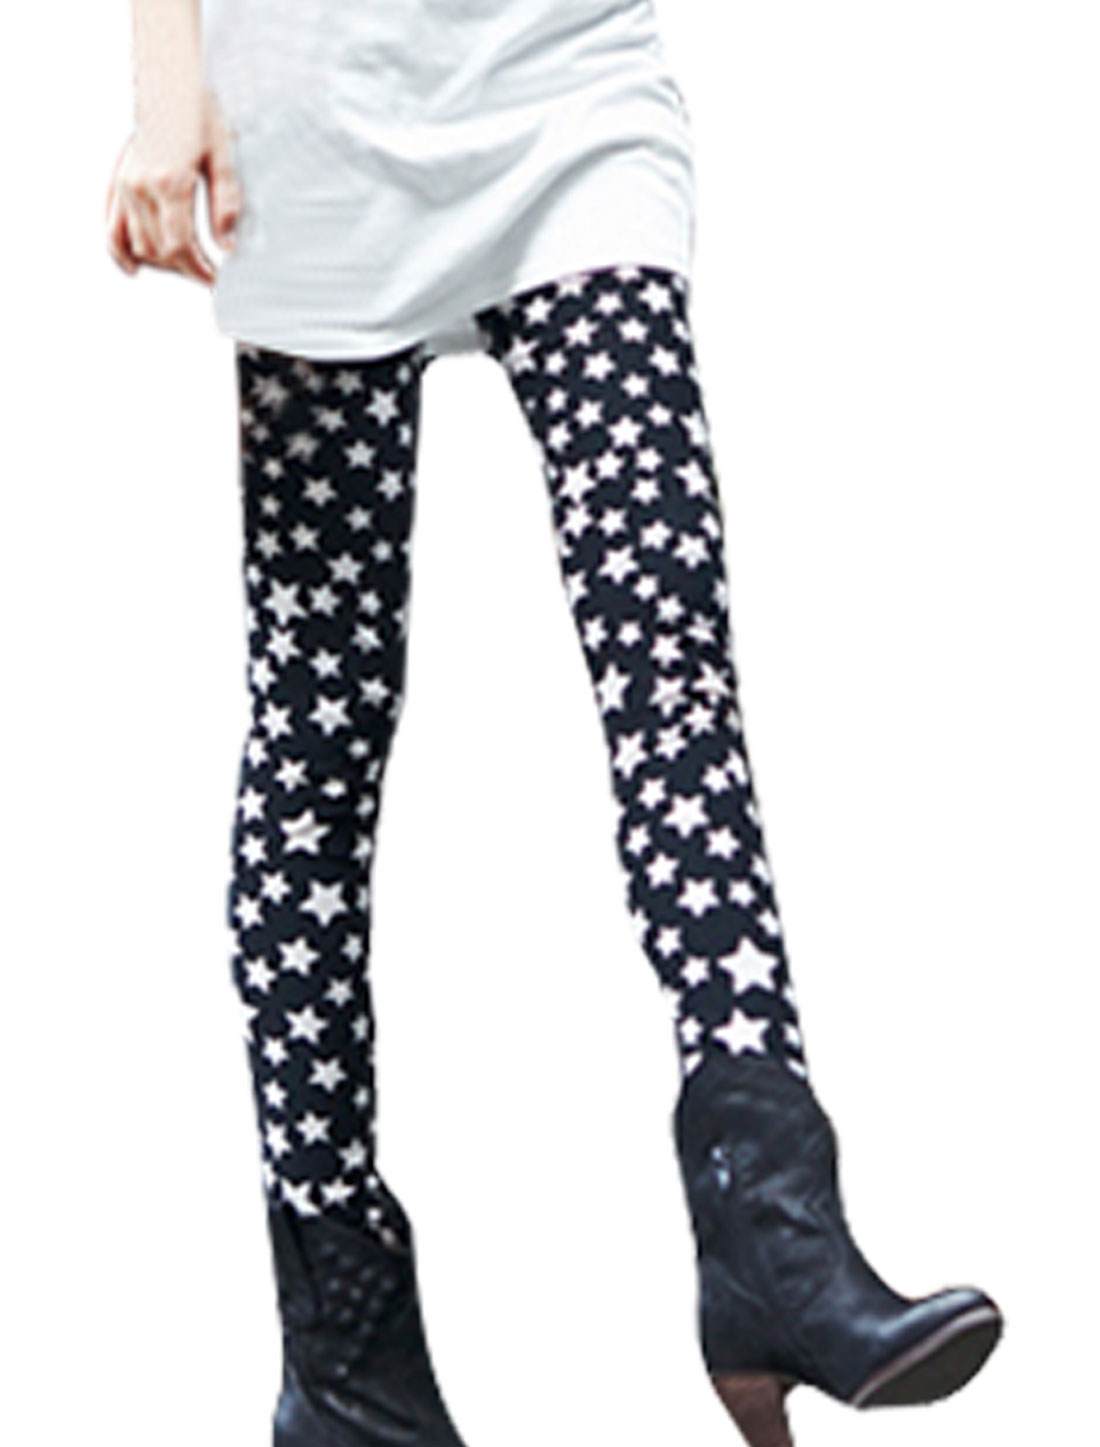 Star Print Elastic Waist Close-fitting Leggings Black XS for Women